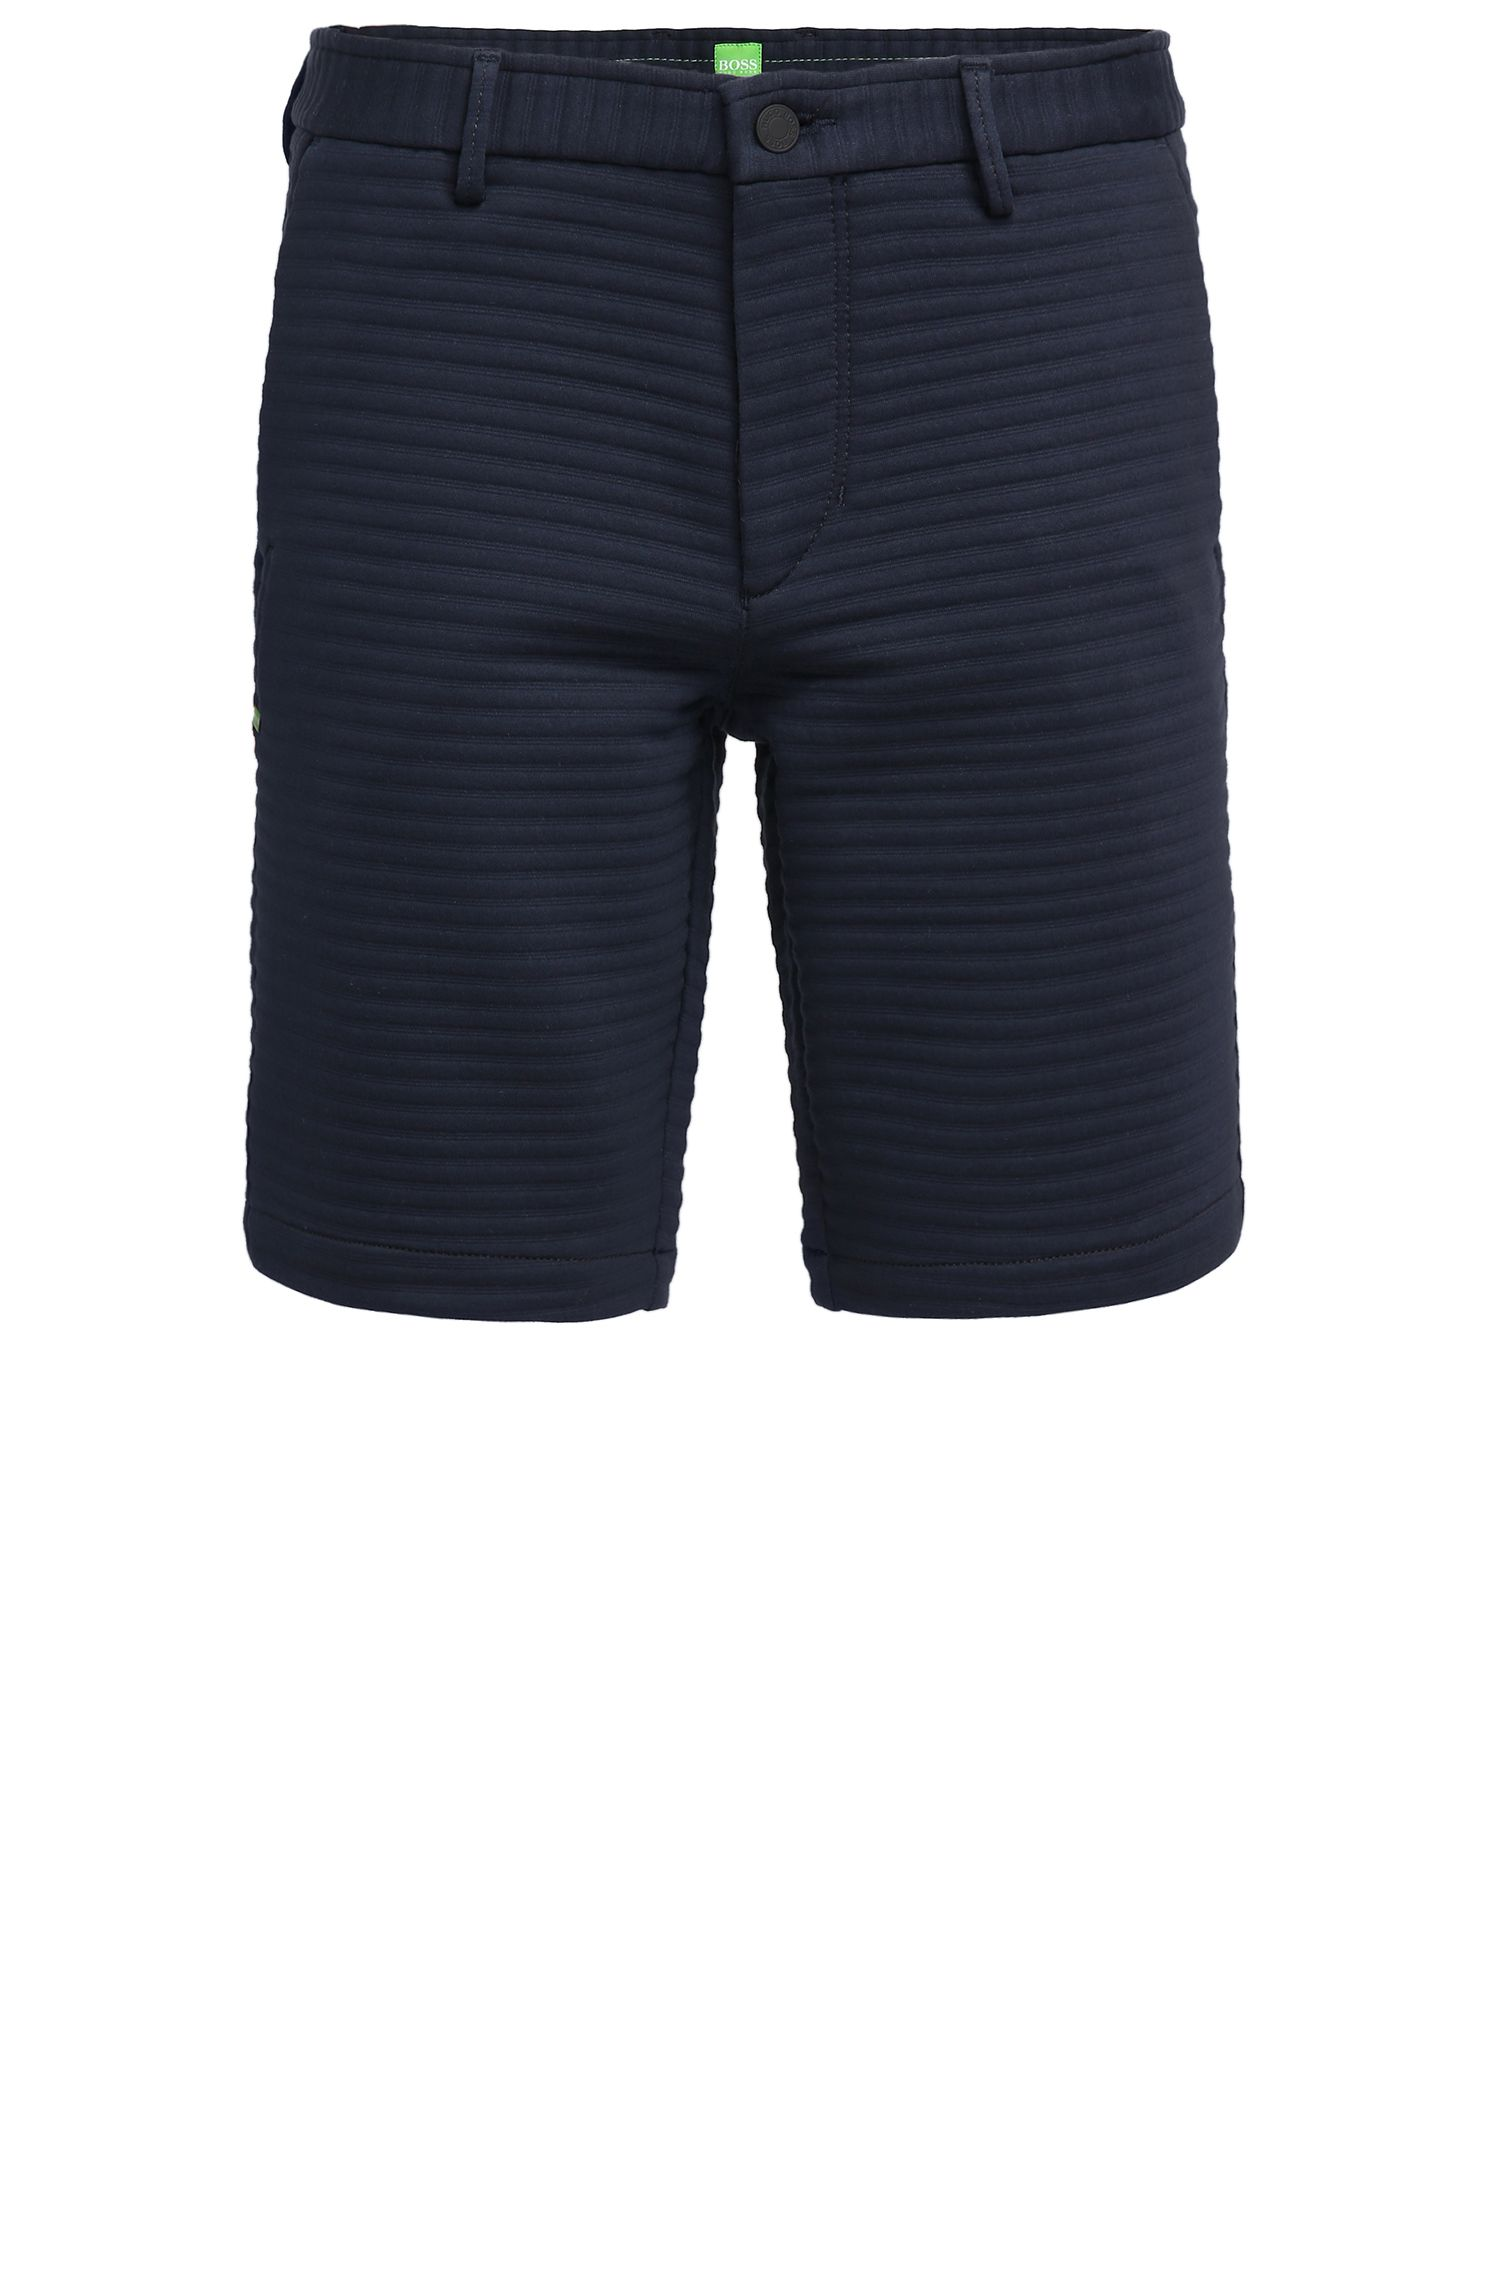 Slim-fit shorts in Italian structured jersey